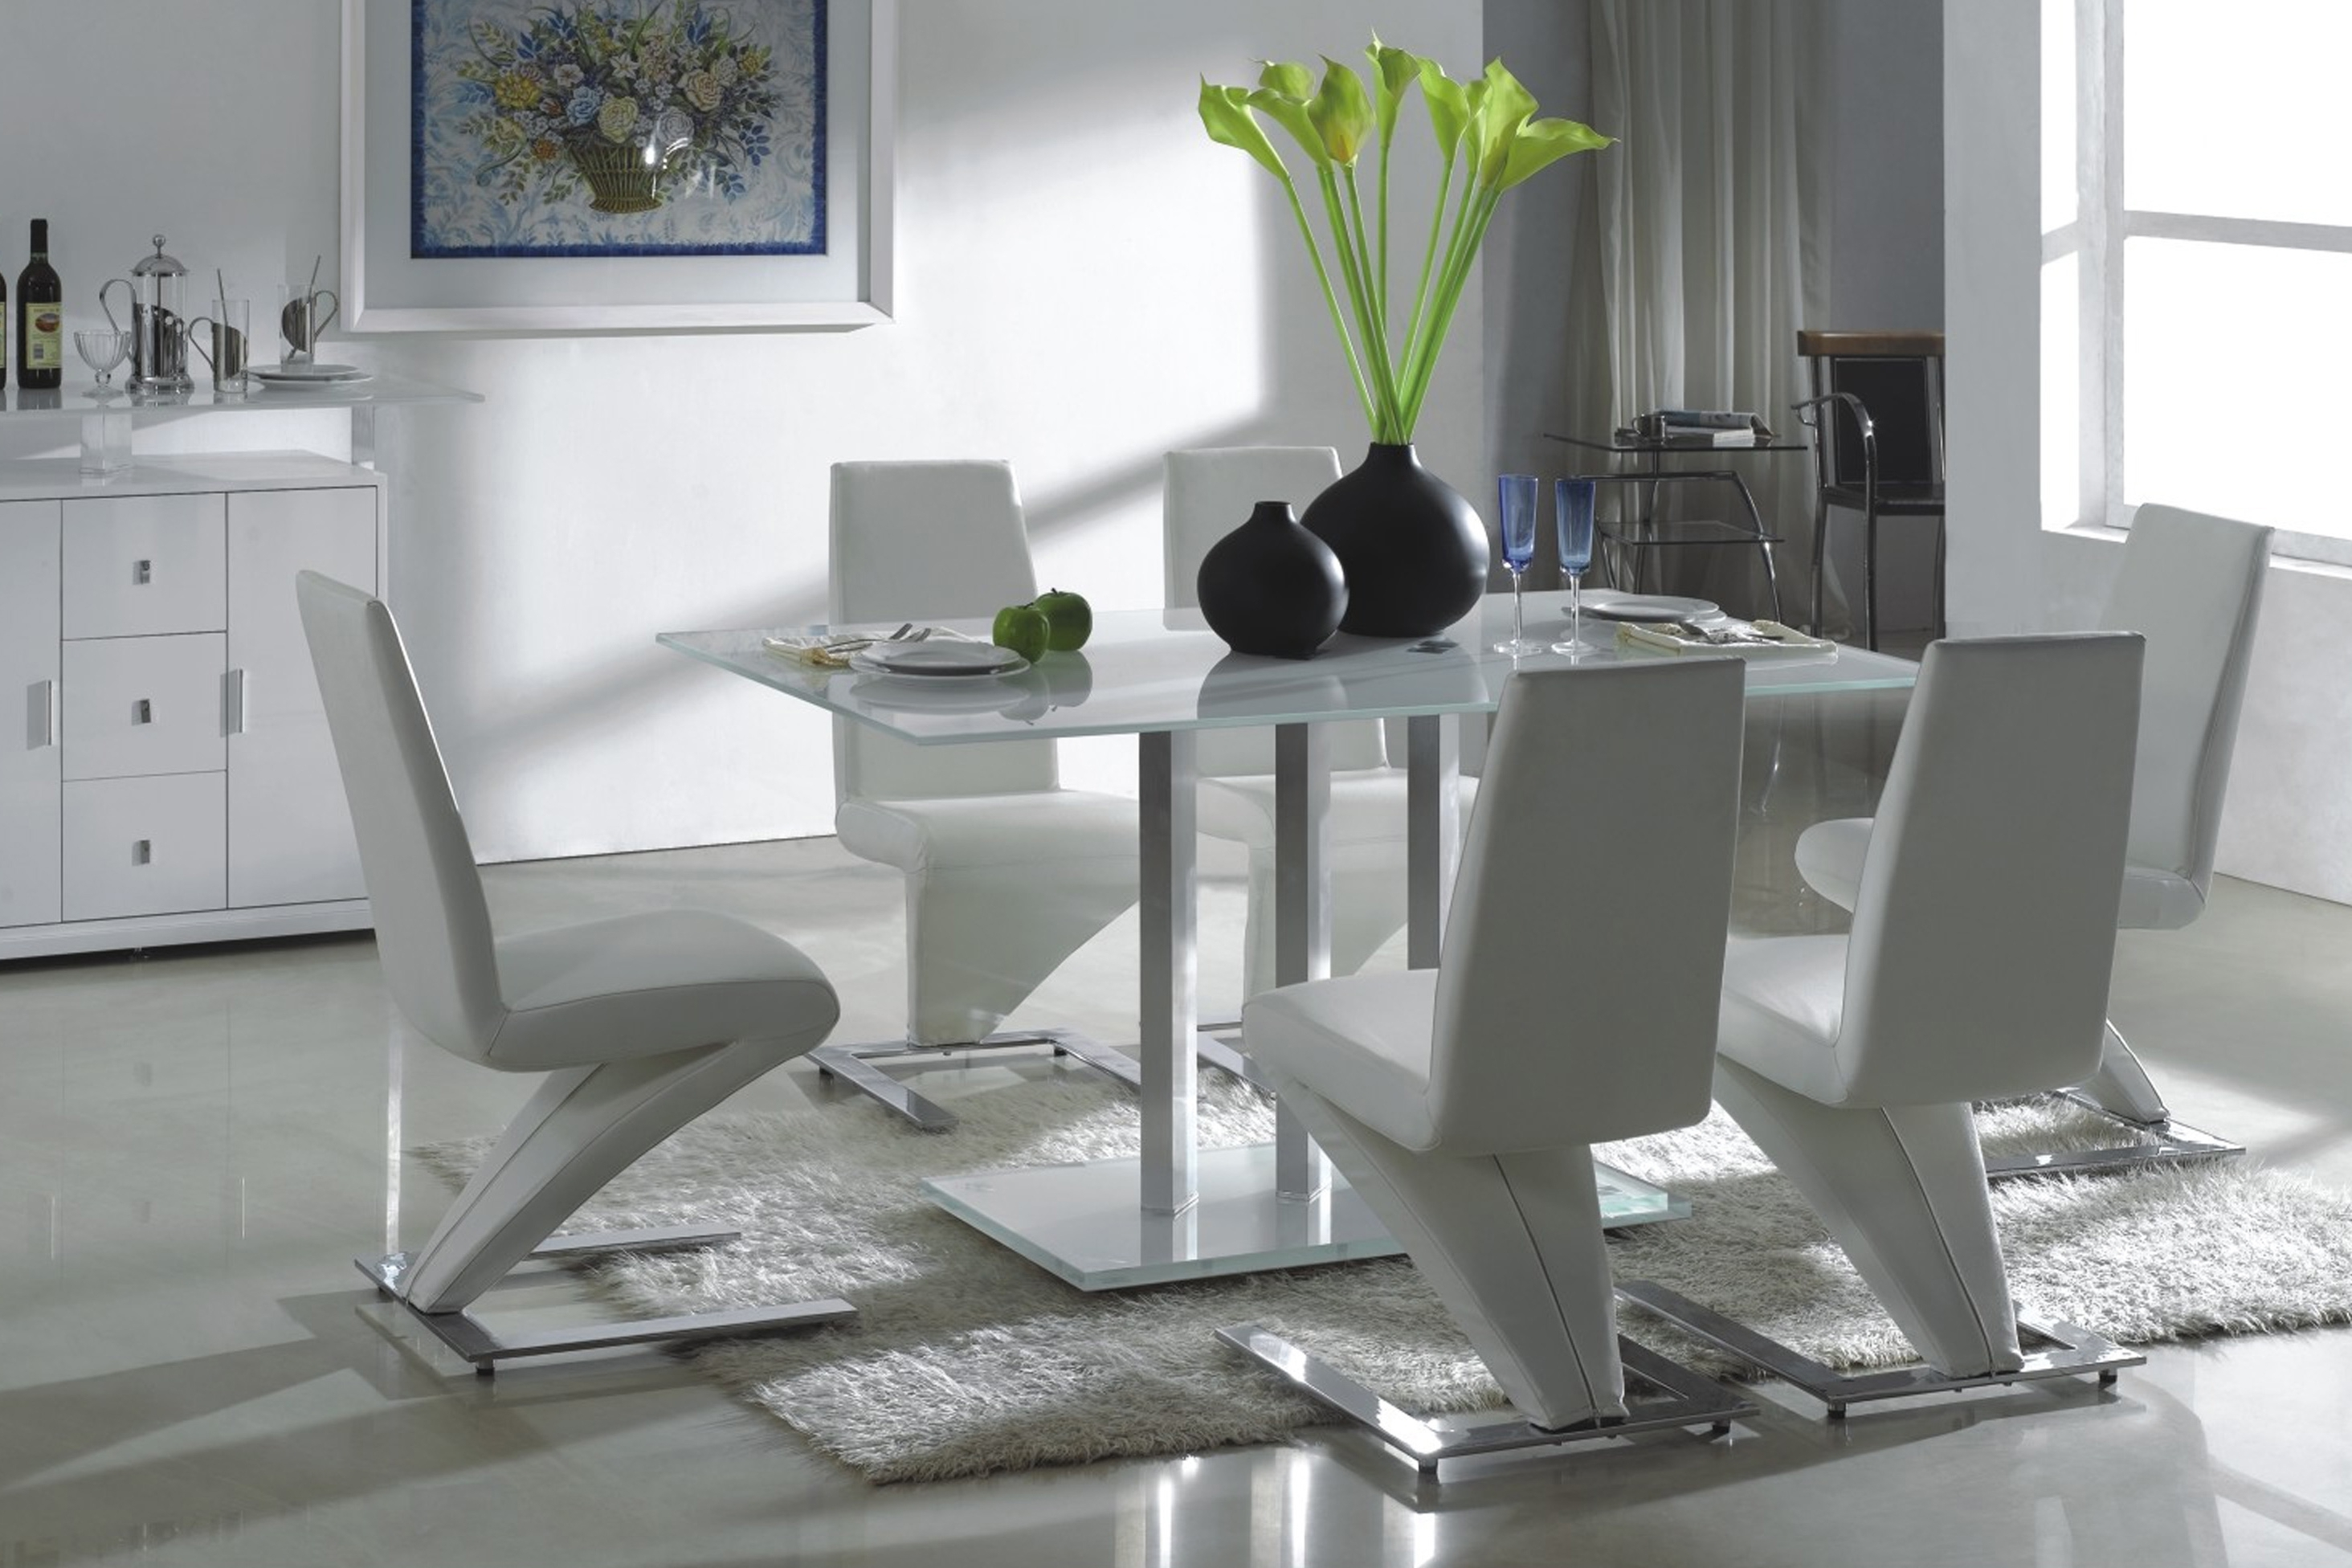 Glass Sophia Round Dining Table Dining Set Tempered Glass Table With For Popular Ikea Round Glass Top Dining Tables (View 6 of 25)